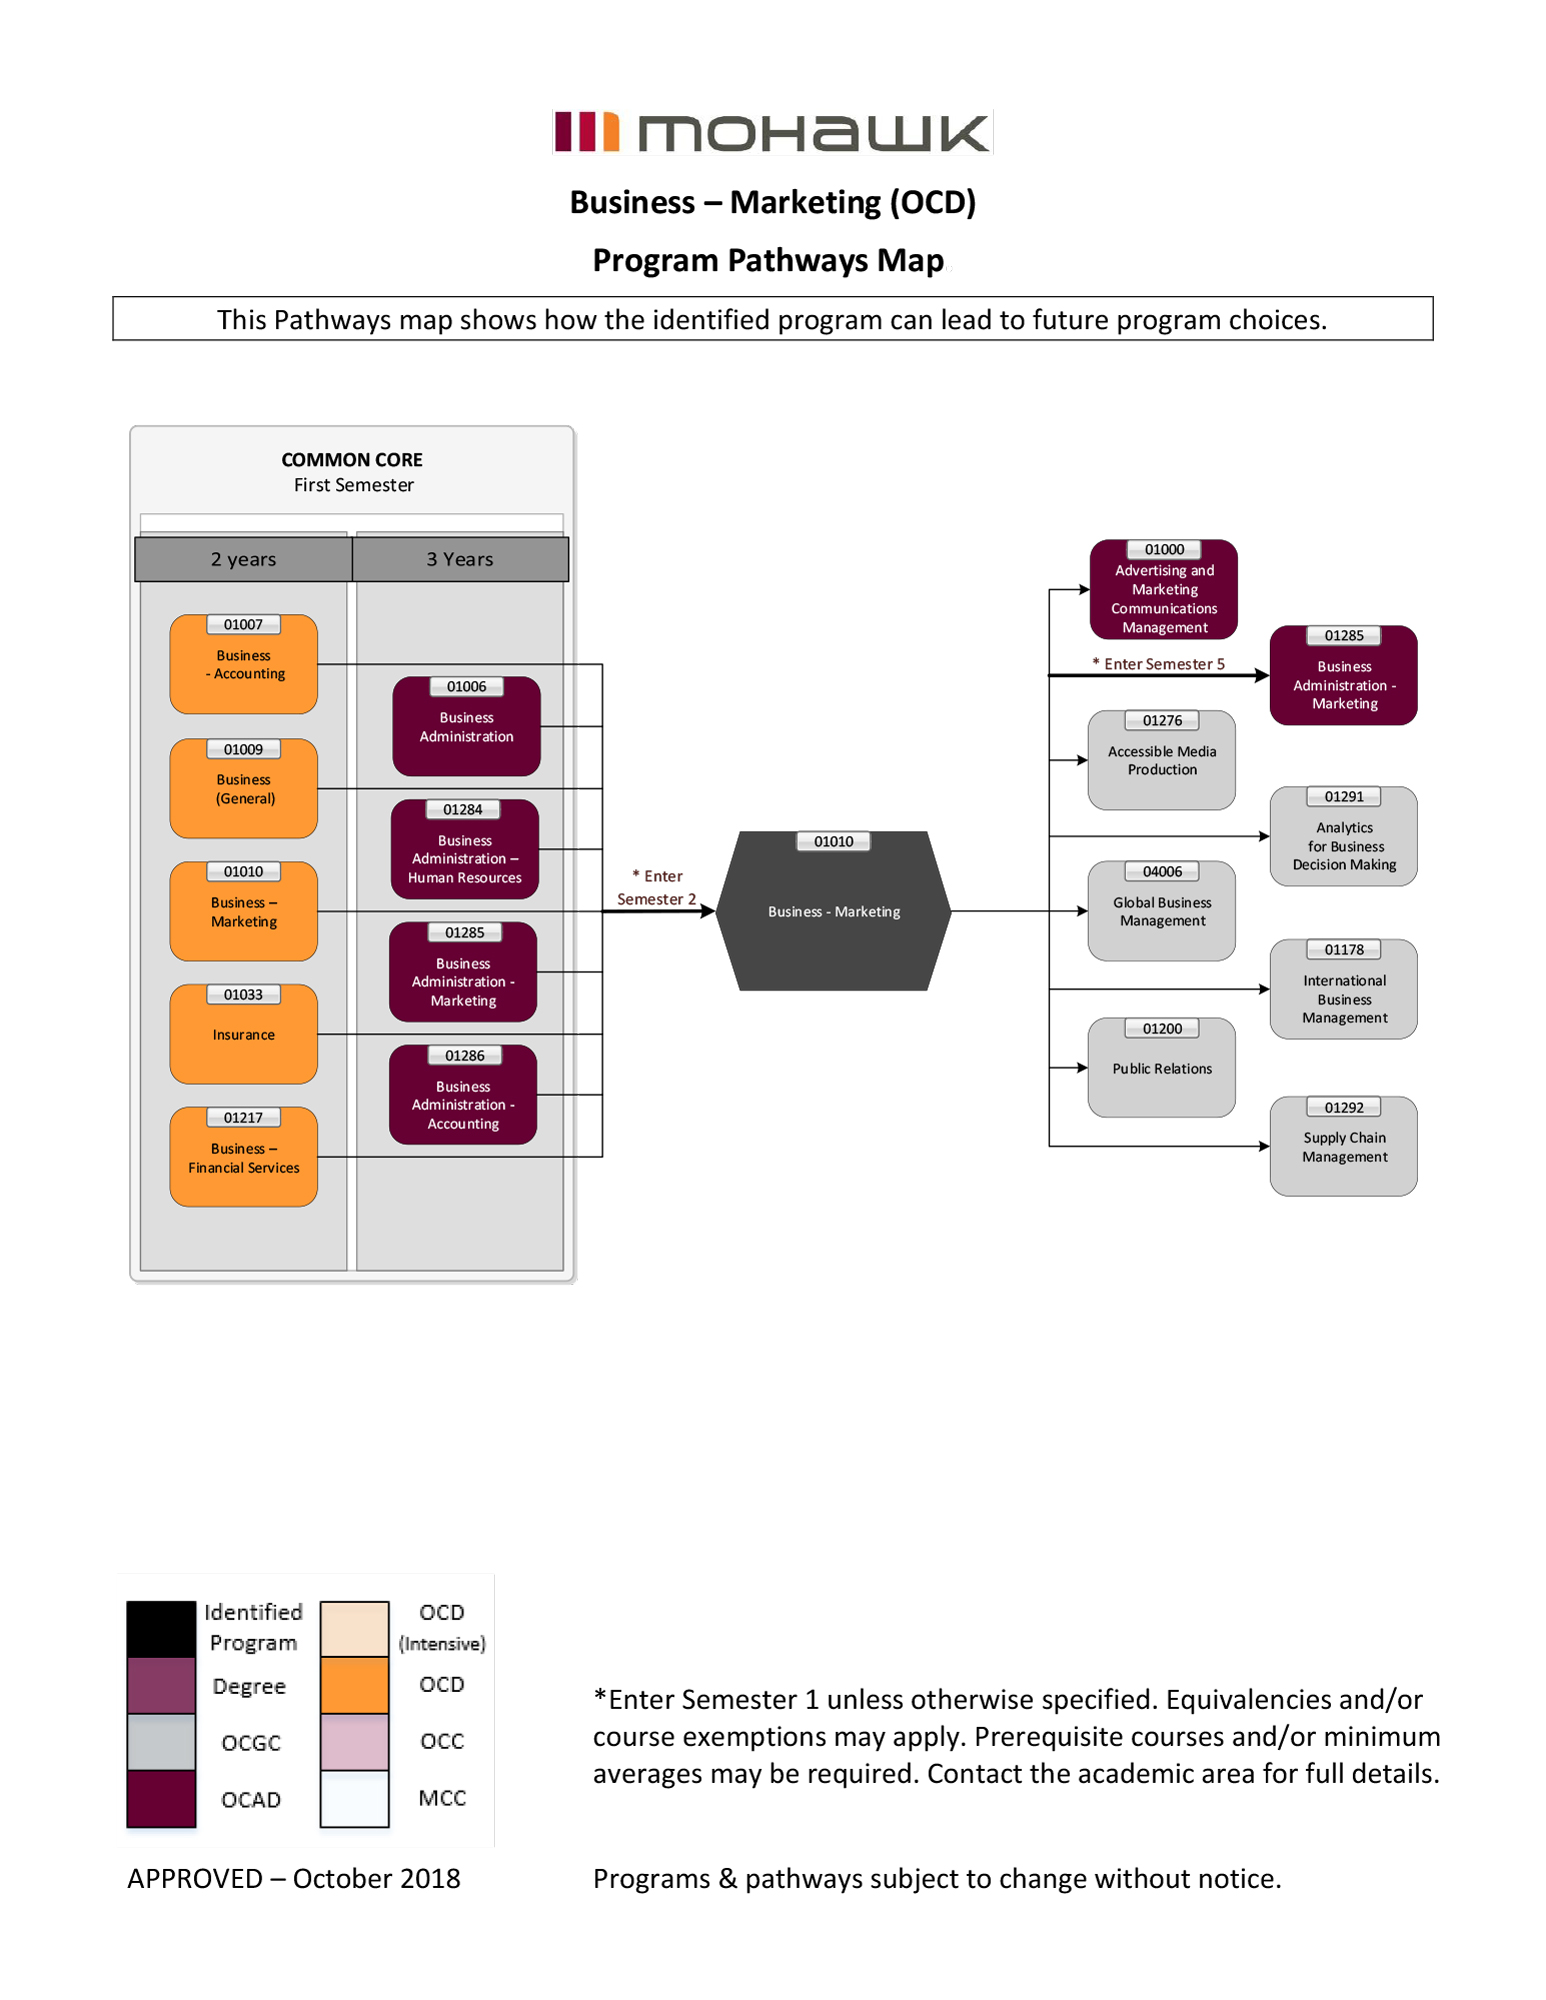 Business Marketing pathways map